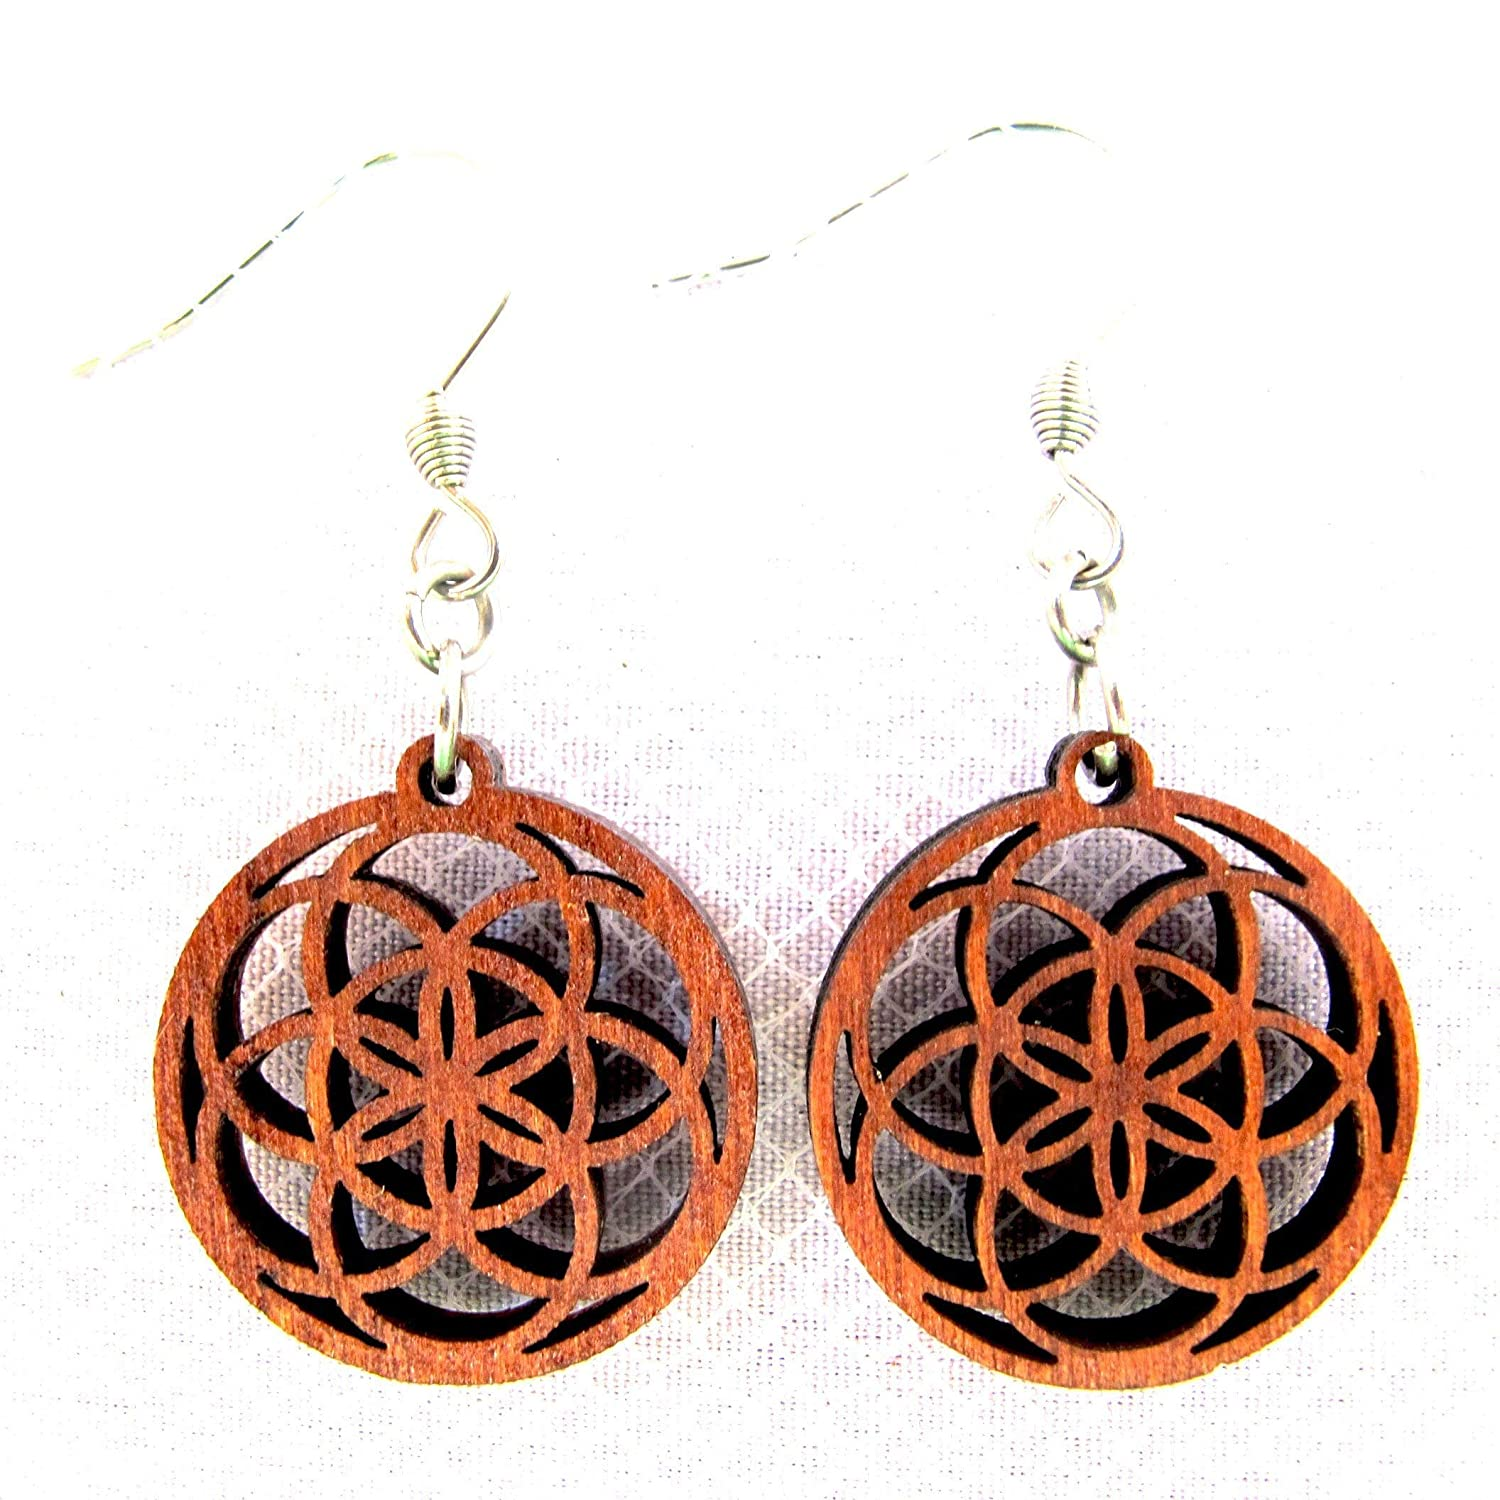 Wooden Earrings Seed of Life in circle Super Small Earrings - Fractal geometry jewelry - Eco-friendly Jewelry